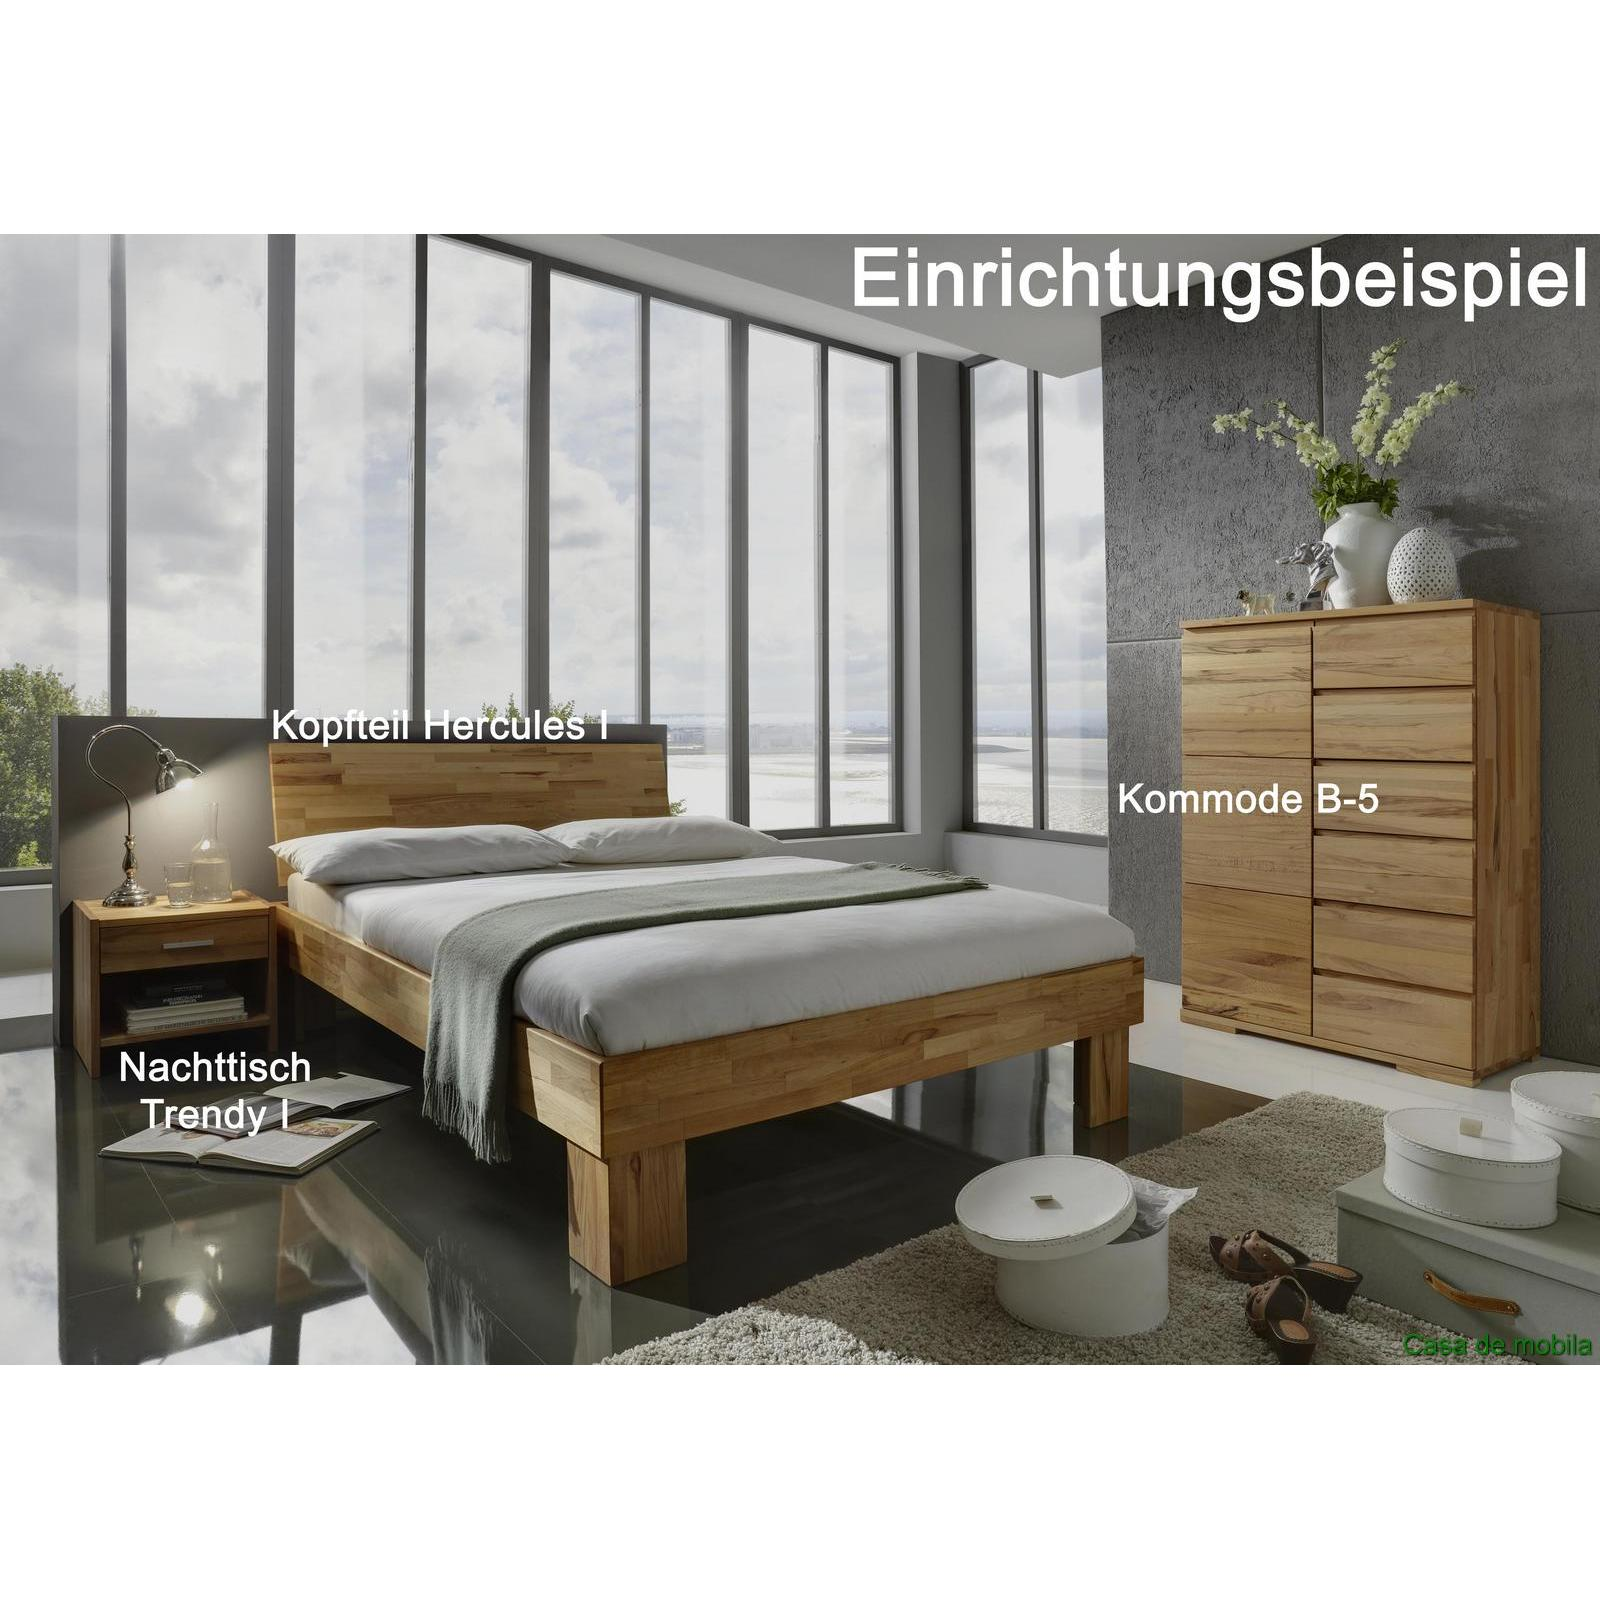 massivholz bett kernbuche massiv ge lt 100x200 holzbett jugendbett buchenbett ebay. Black Bedroom Furniture Sets. Home Design Ideas